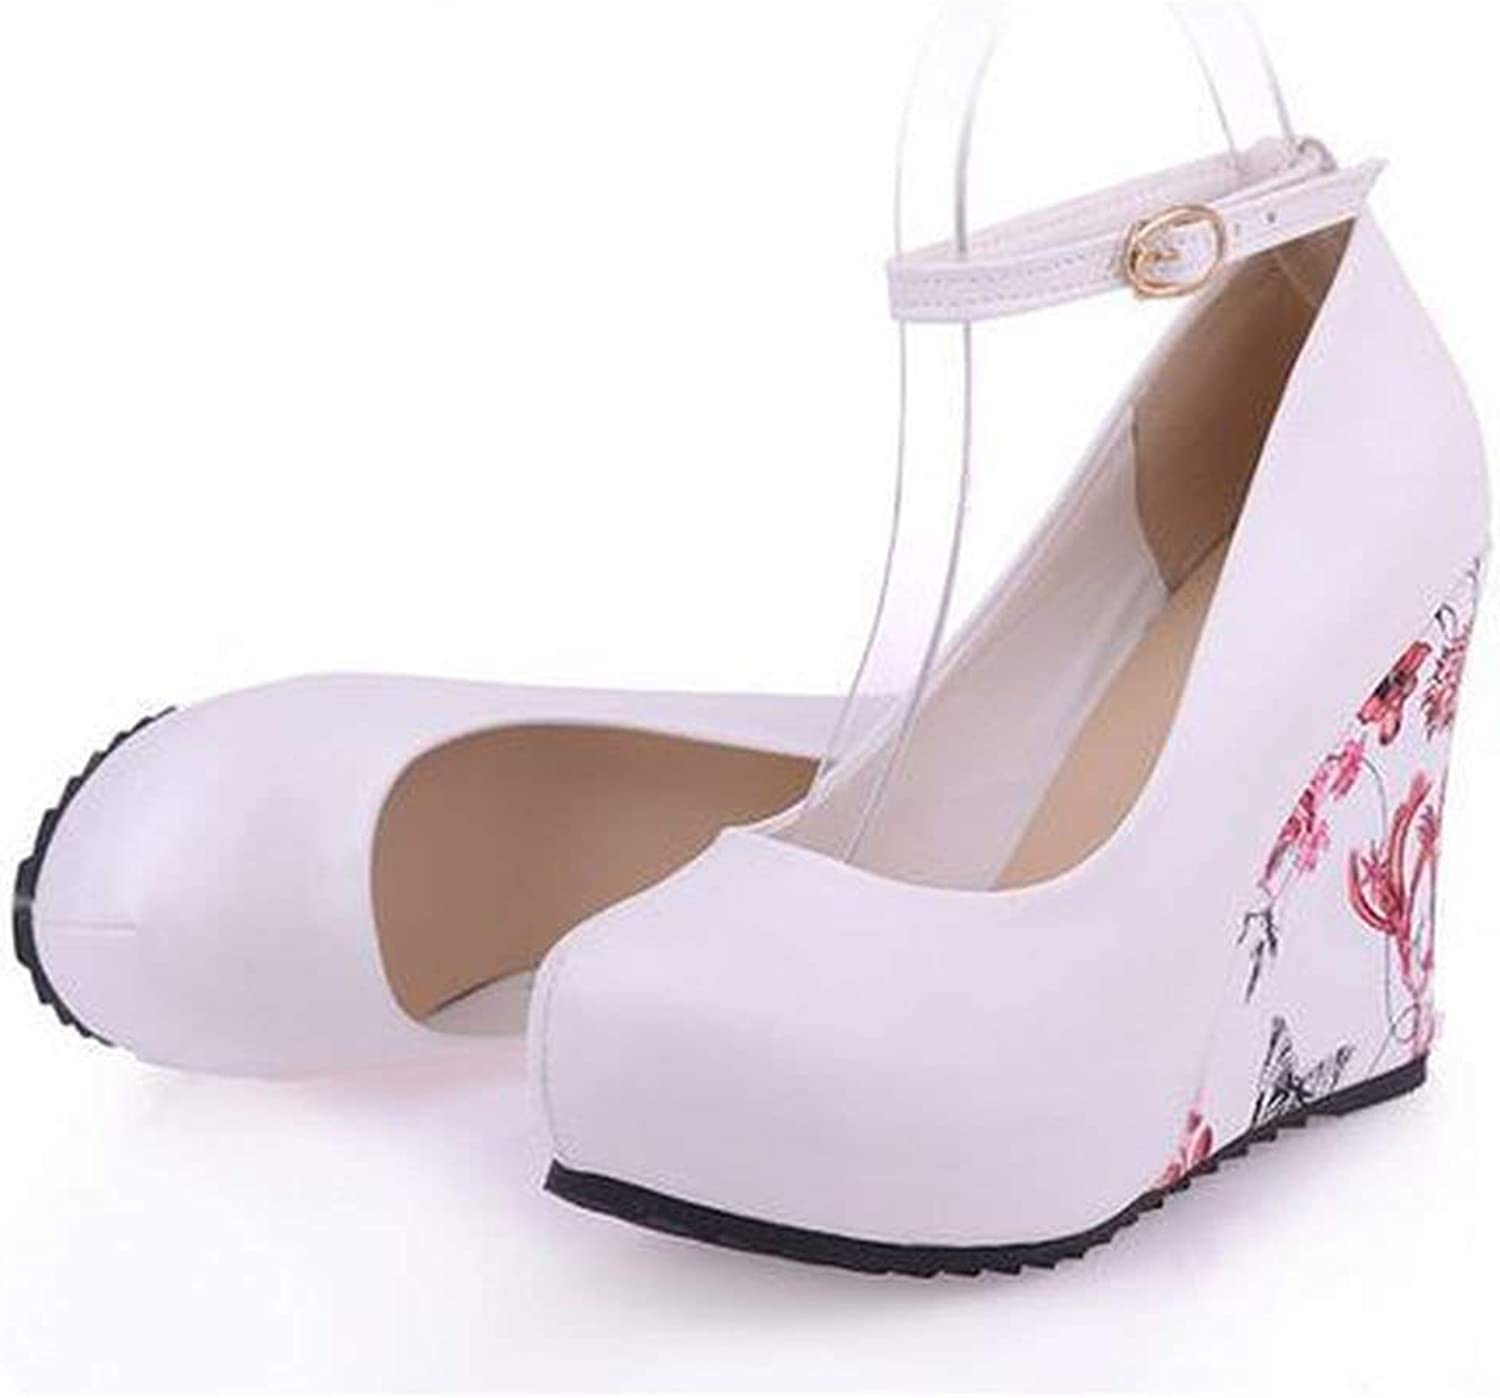 Mostand heeled-sandals high Heels Large Sizes Wedgess shoes Flower Print Platform Ankle-Strap